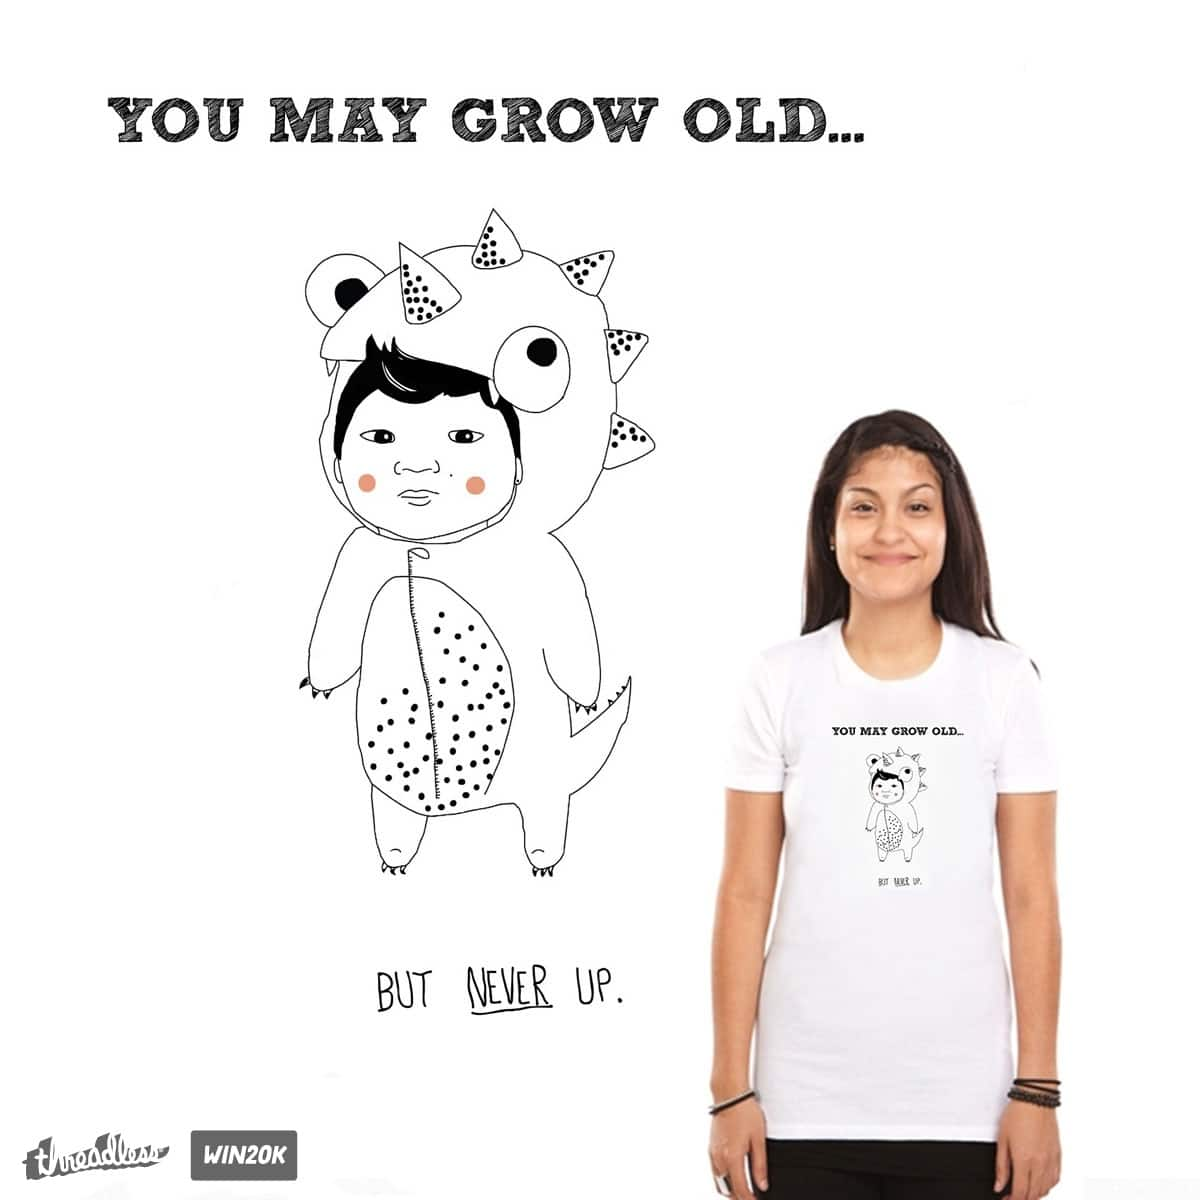 Don't grow up. (Just don't.) by Maronika on Threadless